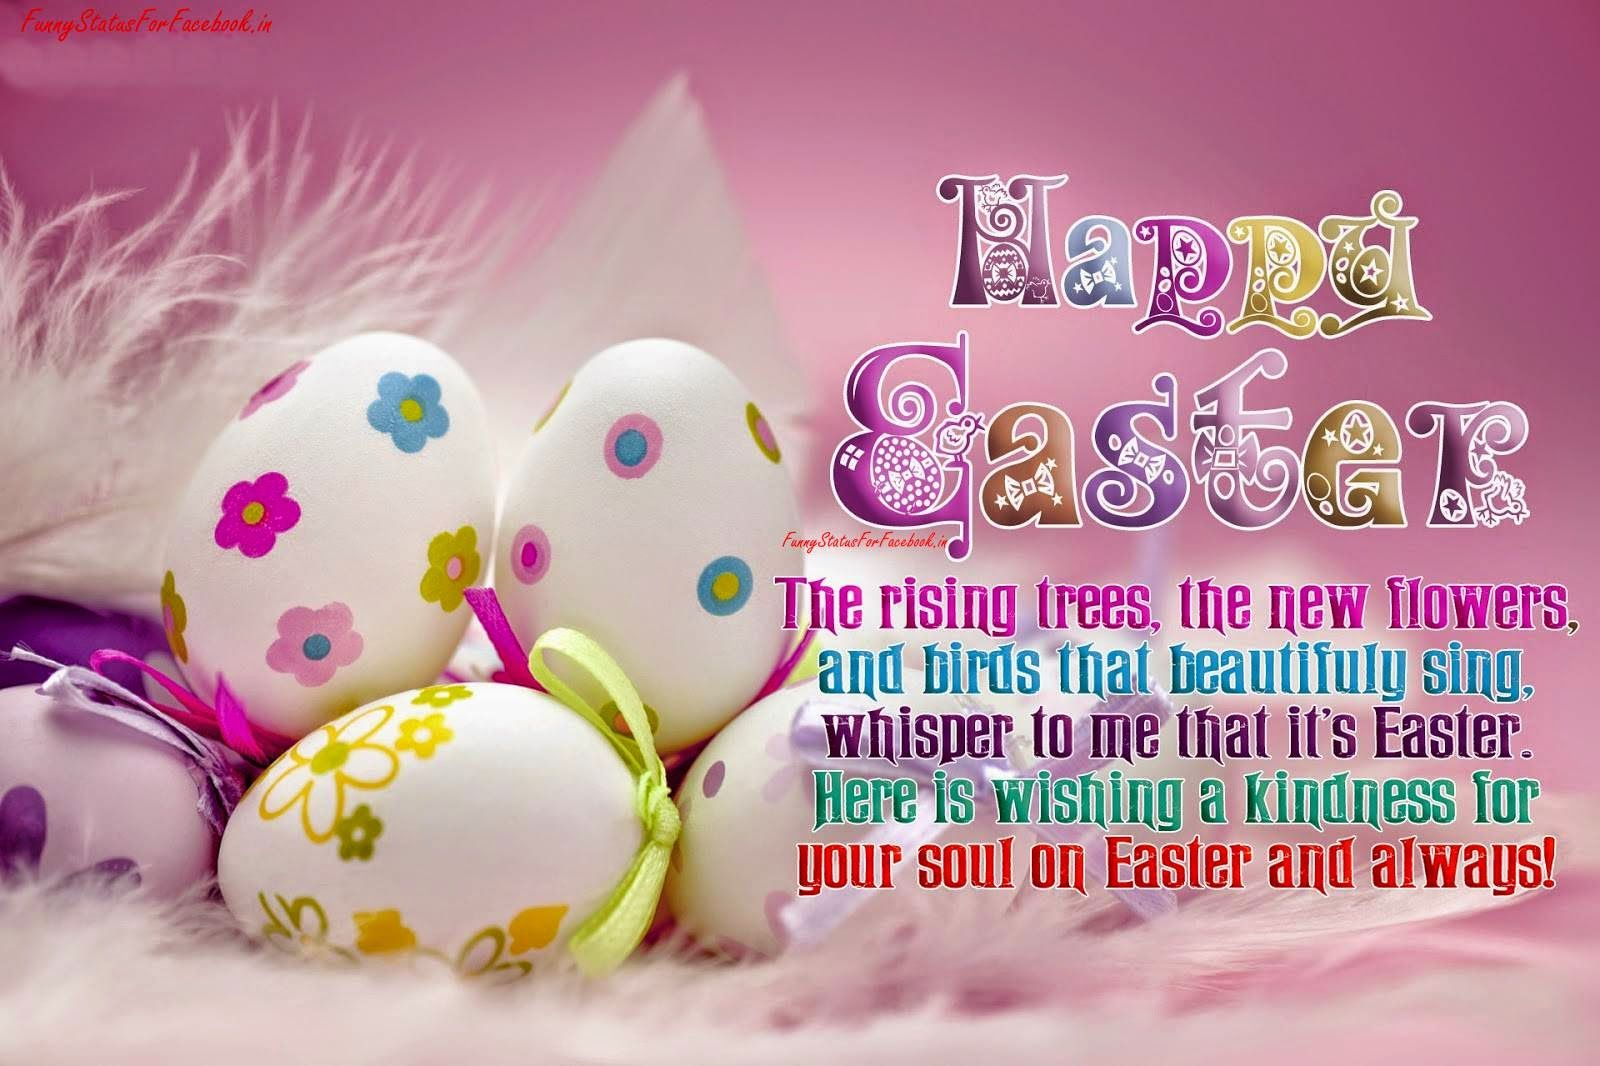 Beautiful easter wishes merry christmas and happy new year 2018 beautiful easter wishes kristyandbryce Choice Image